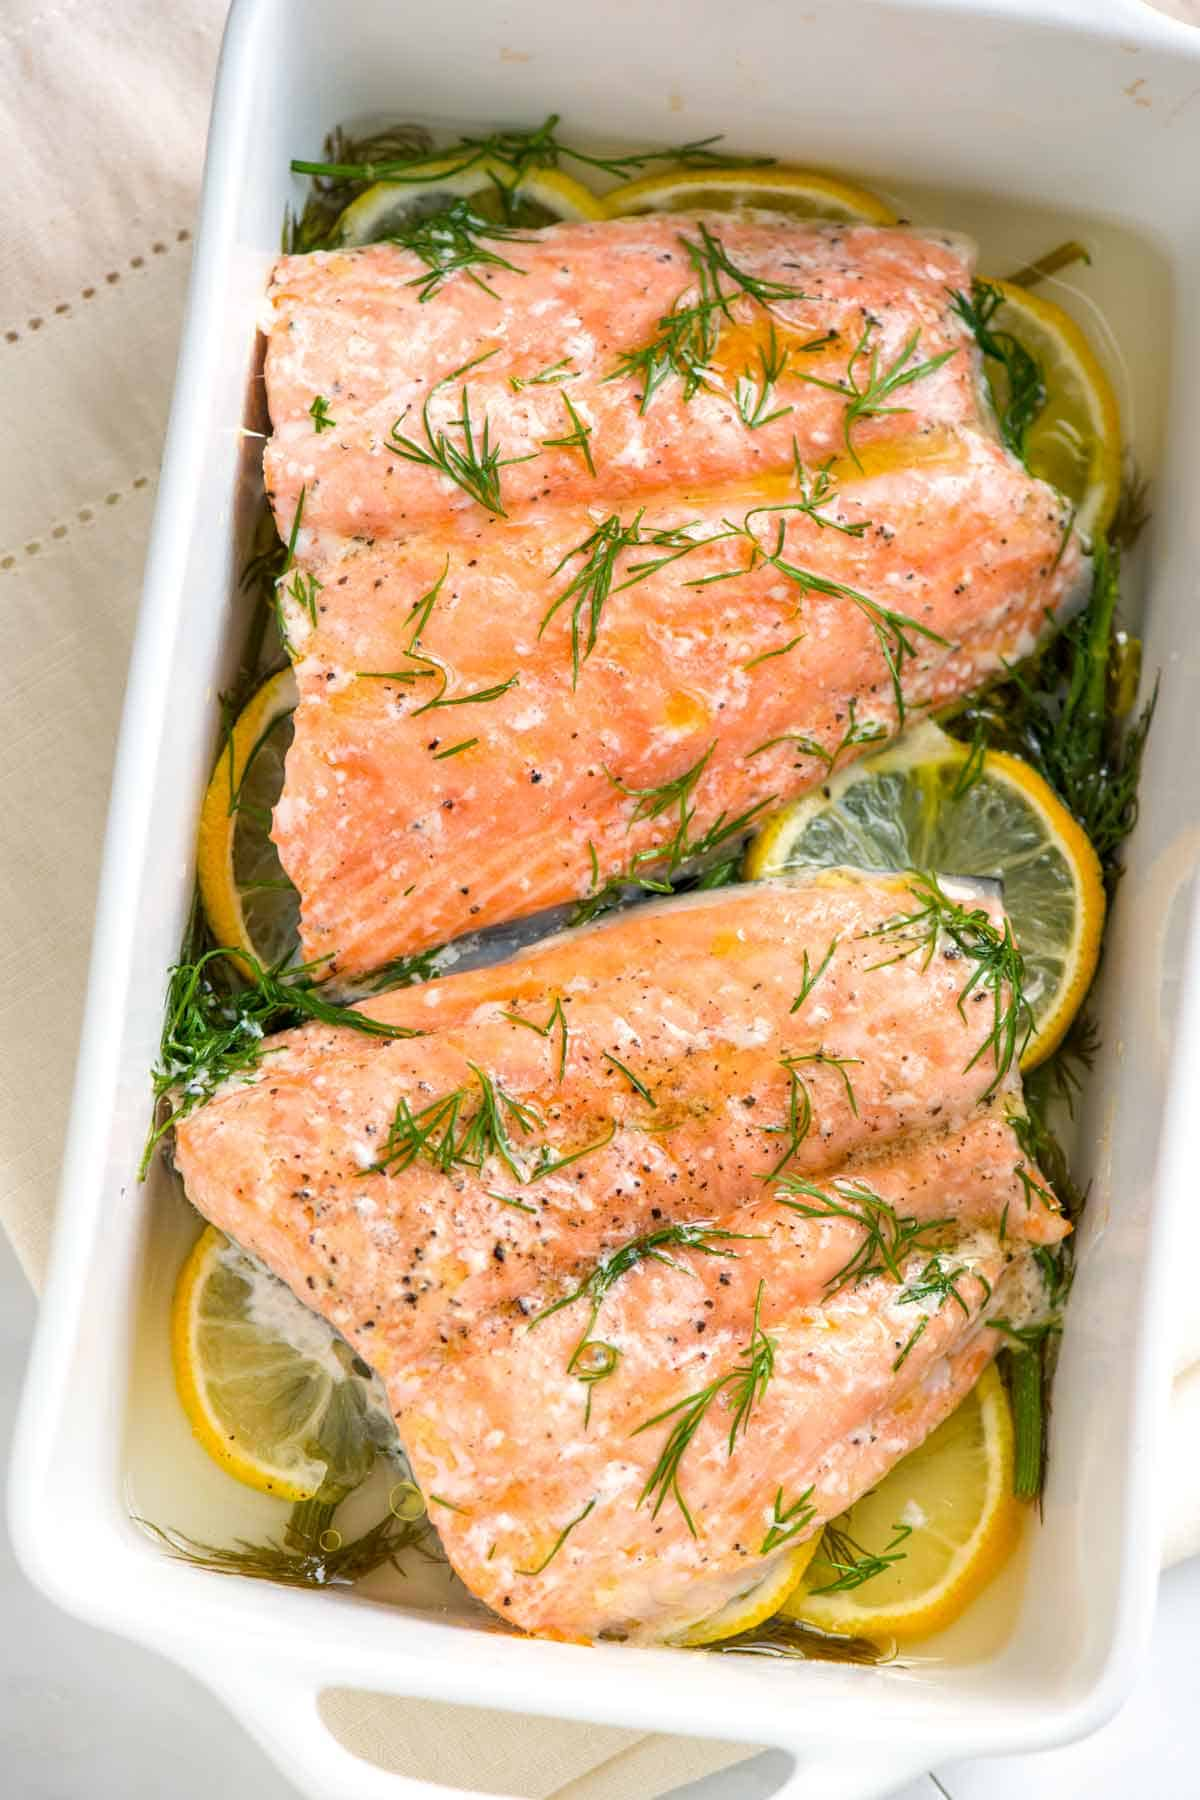 The Trick To Perfectly Cooked Salmon Is To Gently Bake The Fish In A Little Liquid